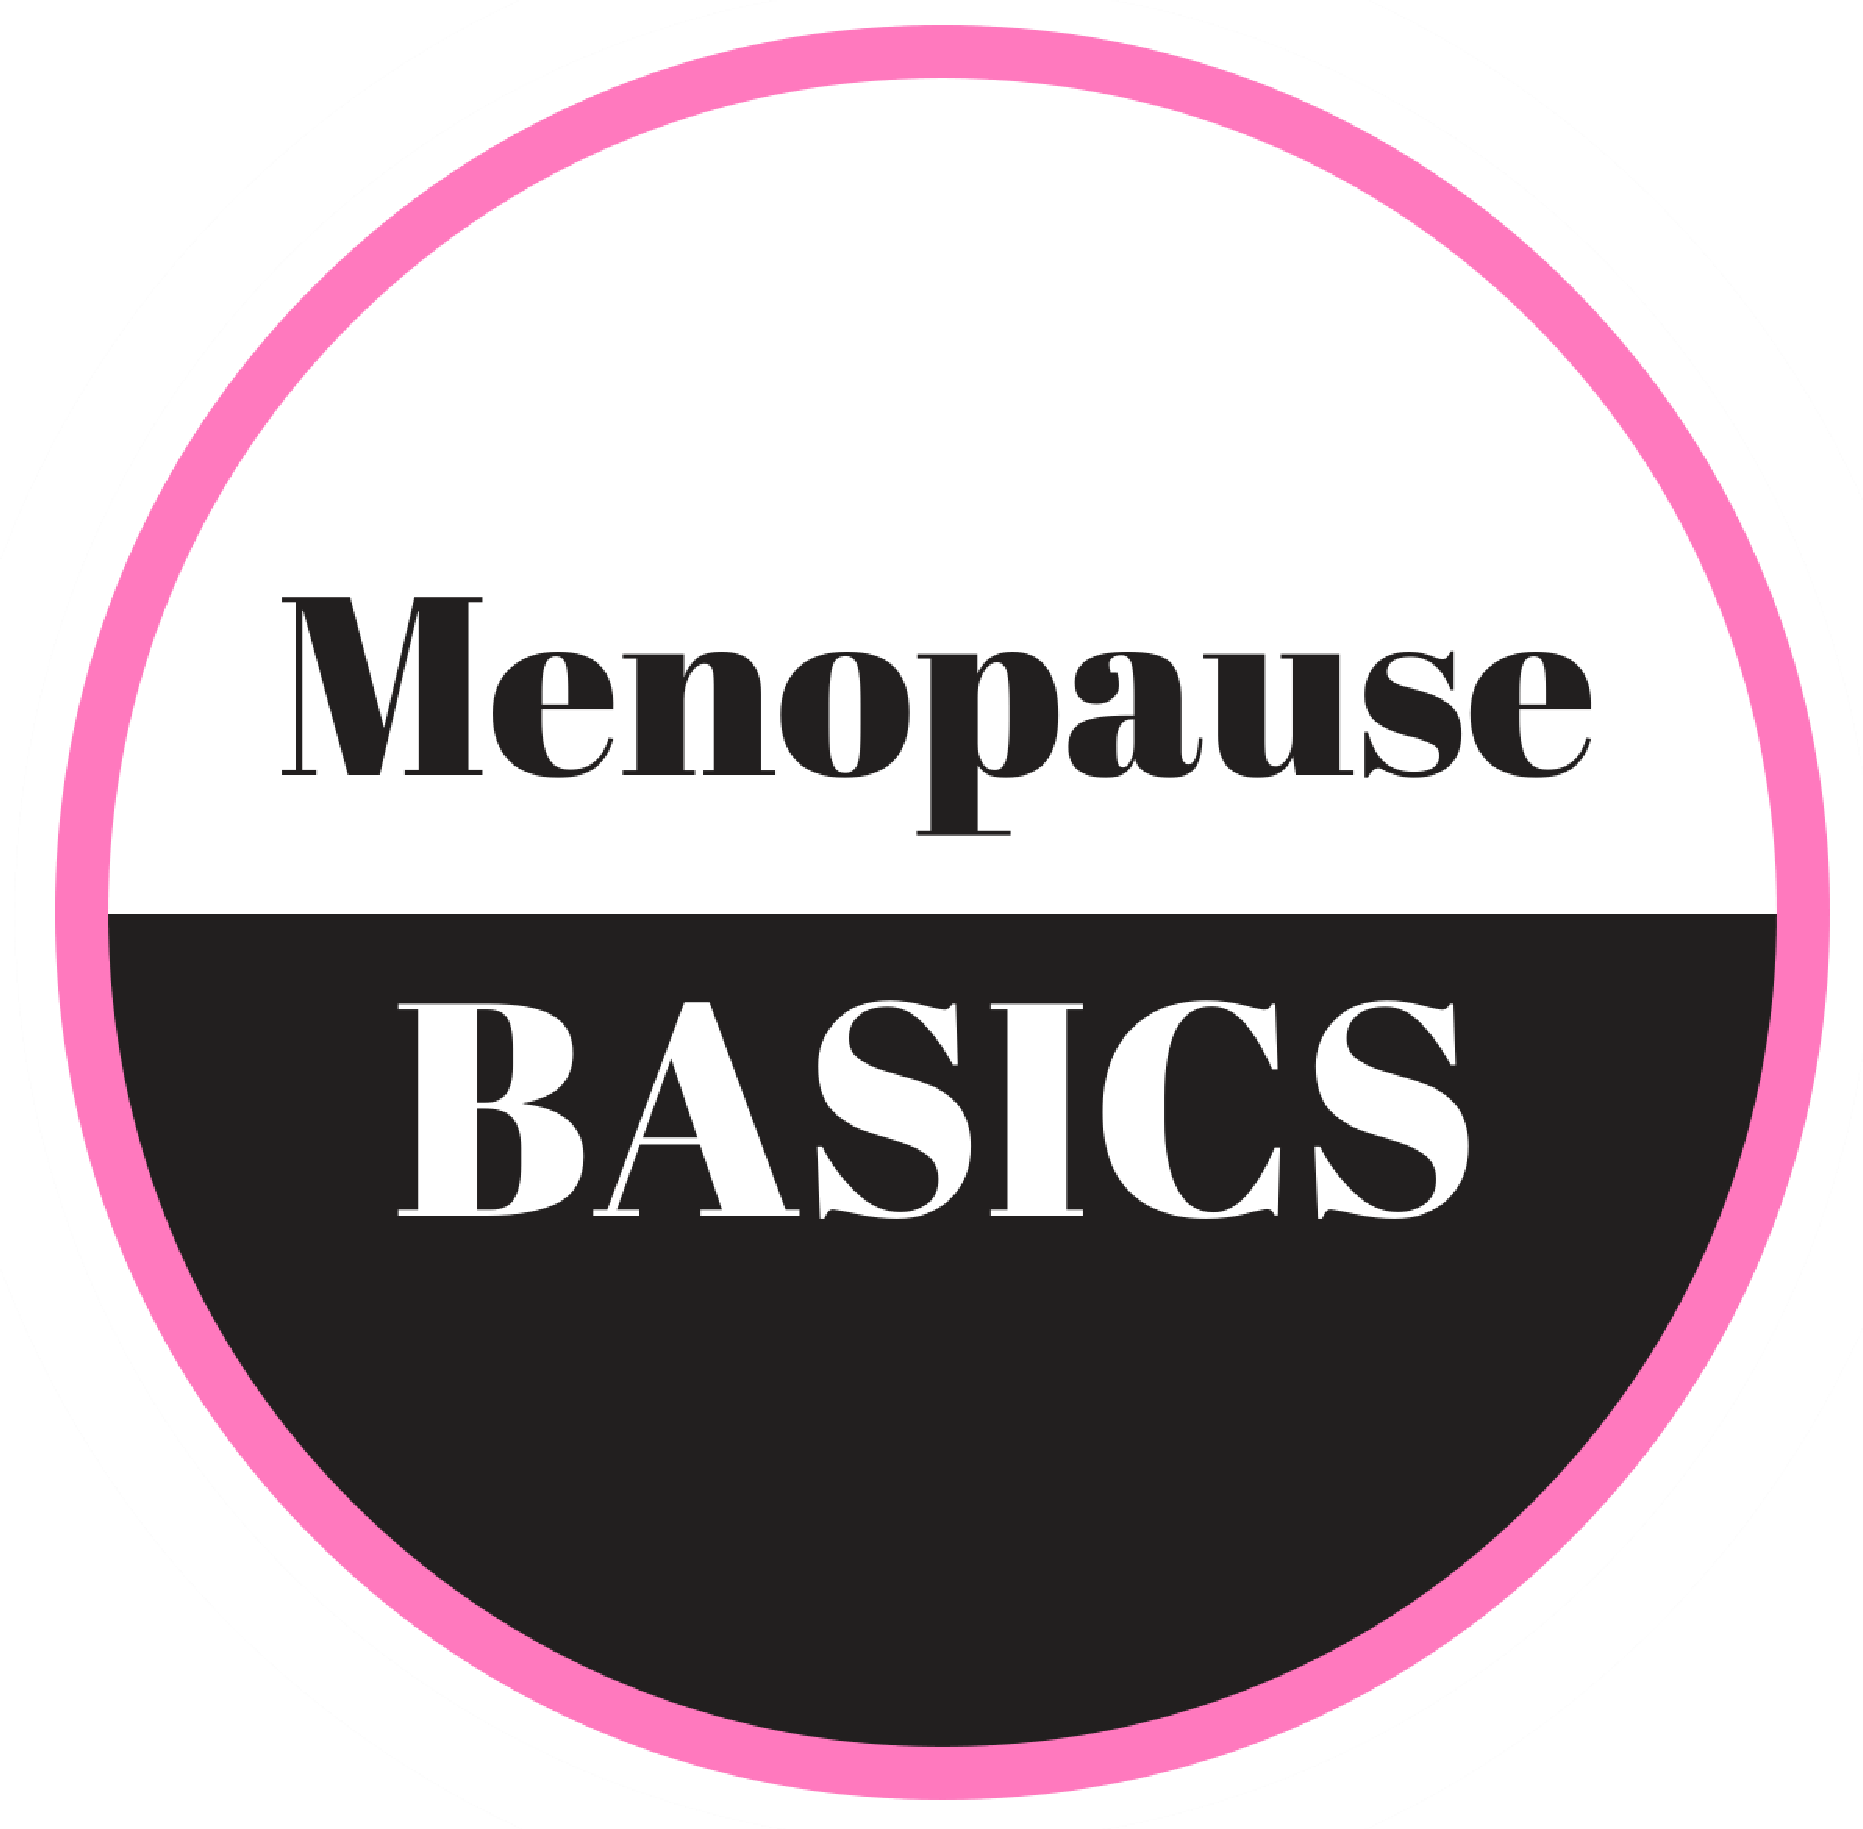 menopause basics learn natural remedies for menopause